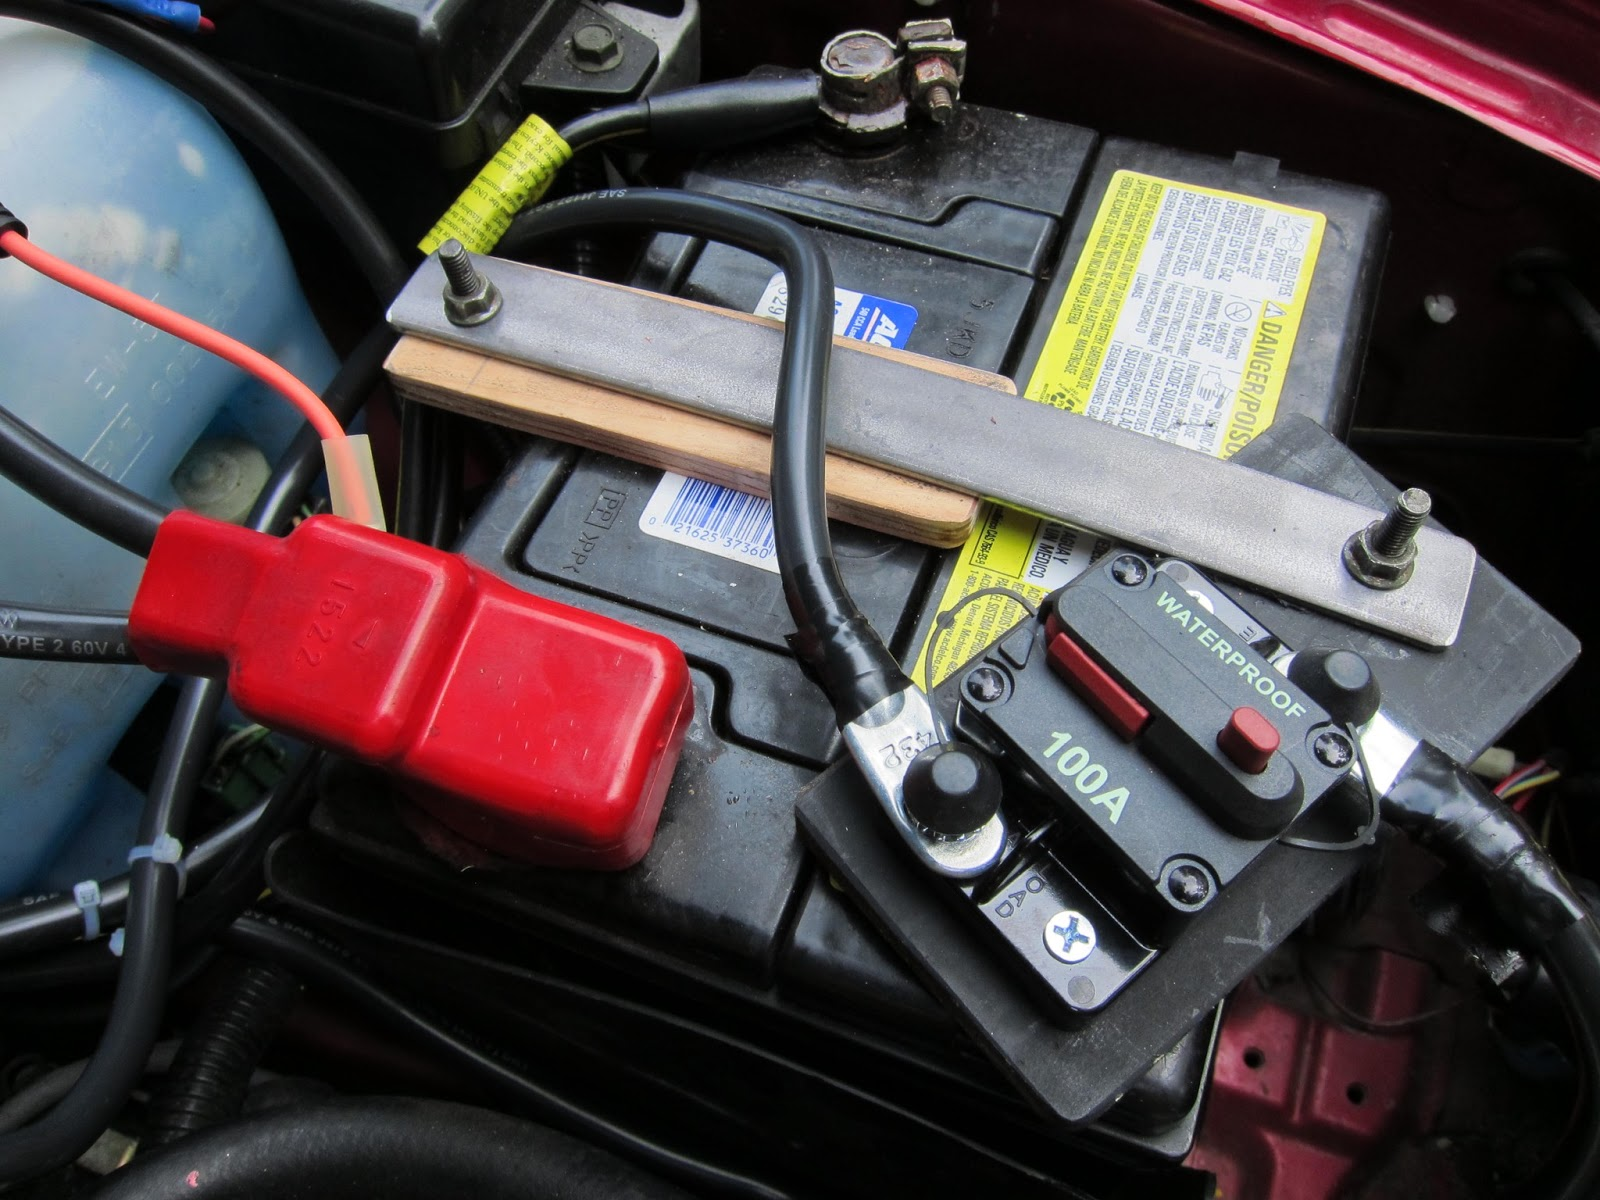 Red Crow Gear Dual Battery System In A 1998 Subaru Legacy Outback